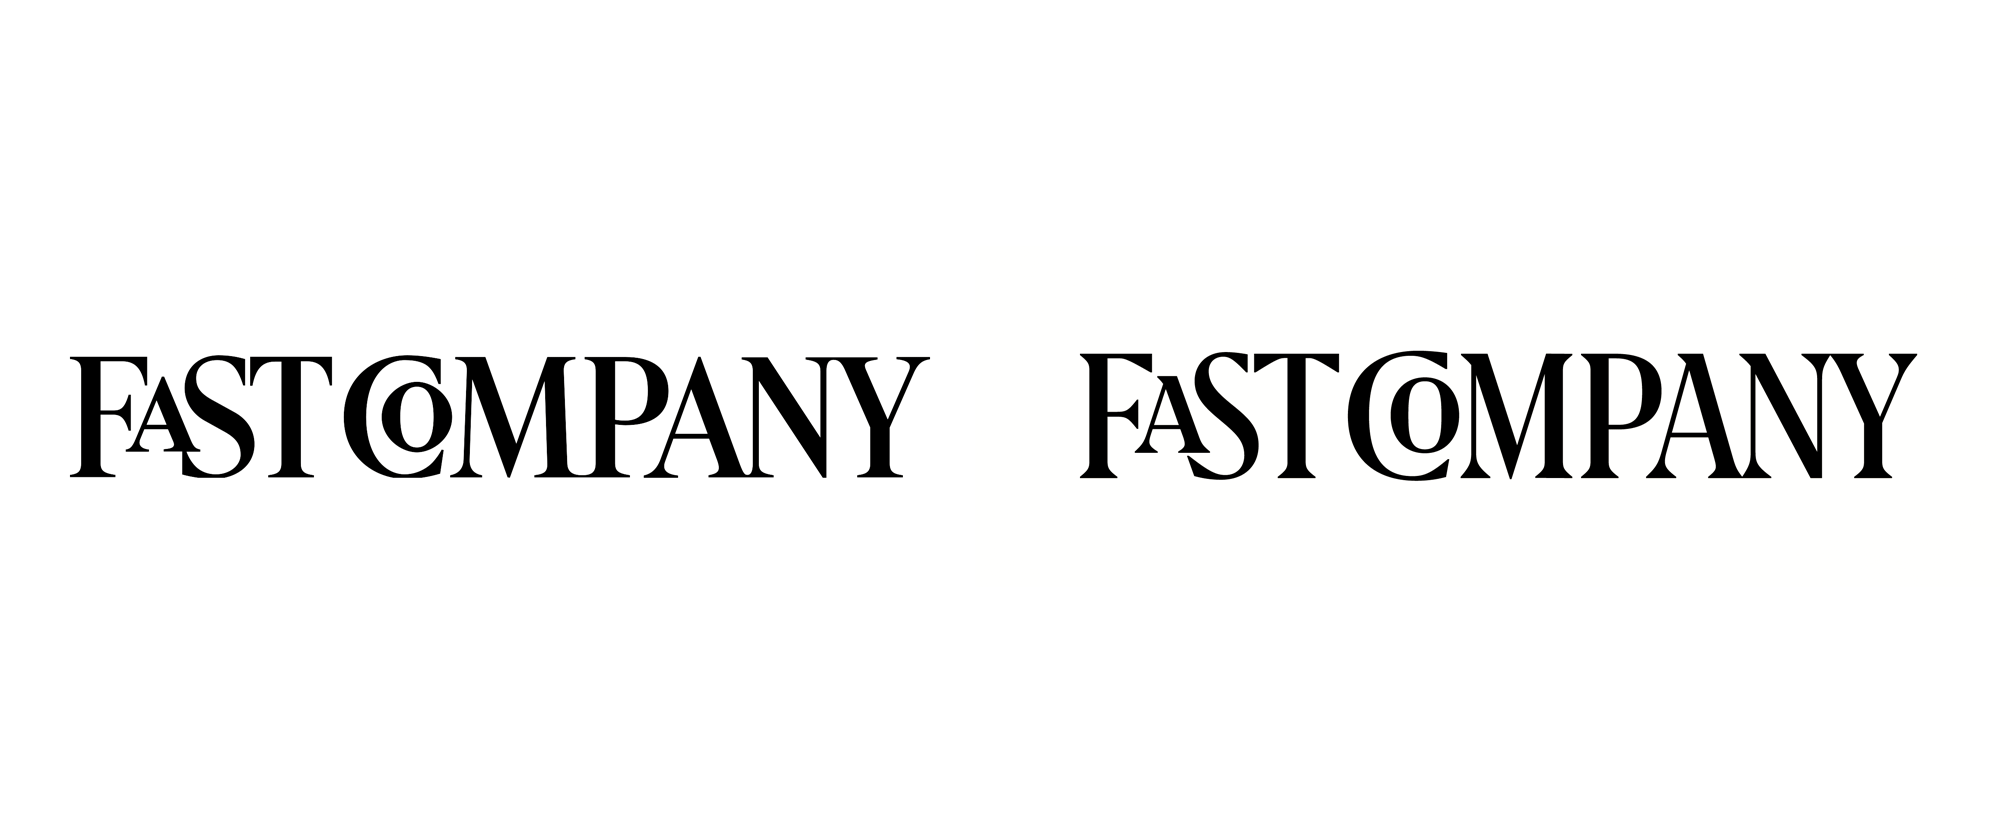 Brand New: New Logo for Fast Company by Rui Abreu and In.